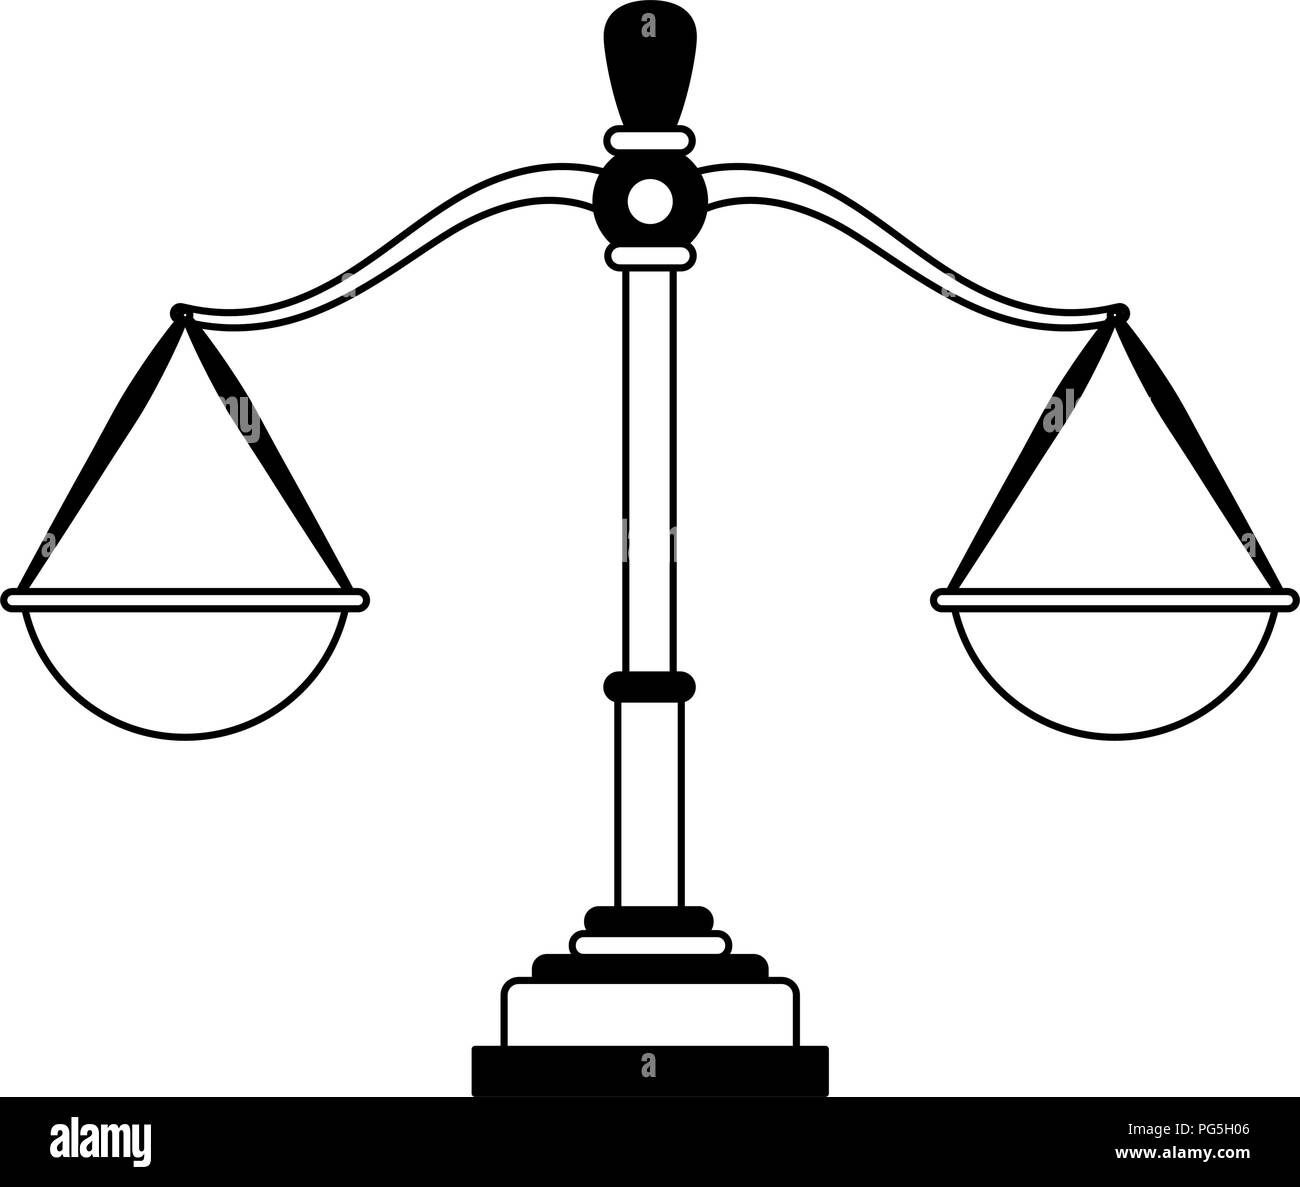 Justice balance symbol in black and white - Stock Image